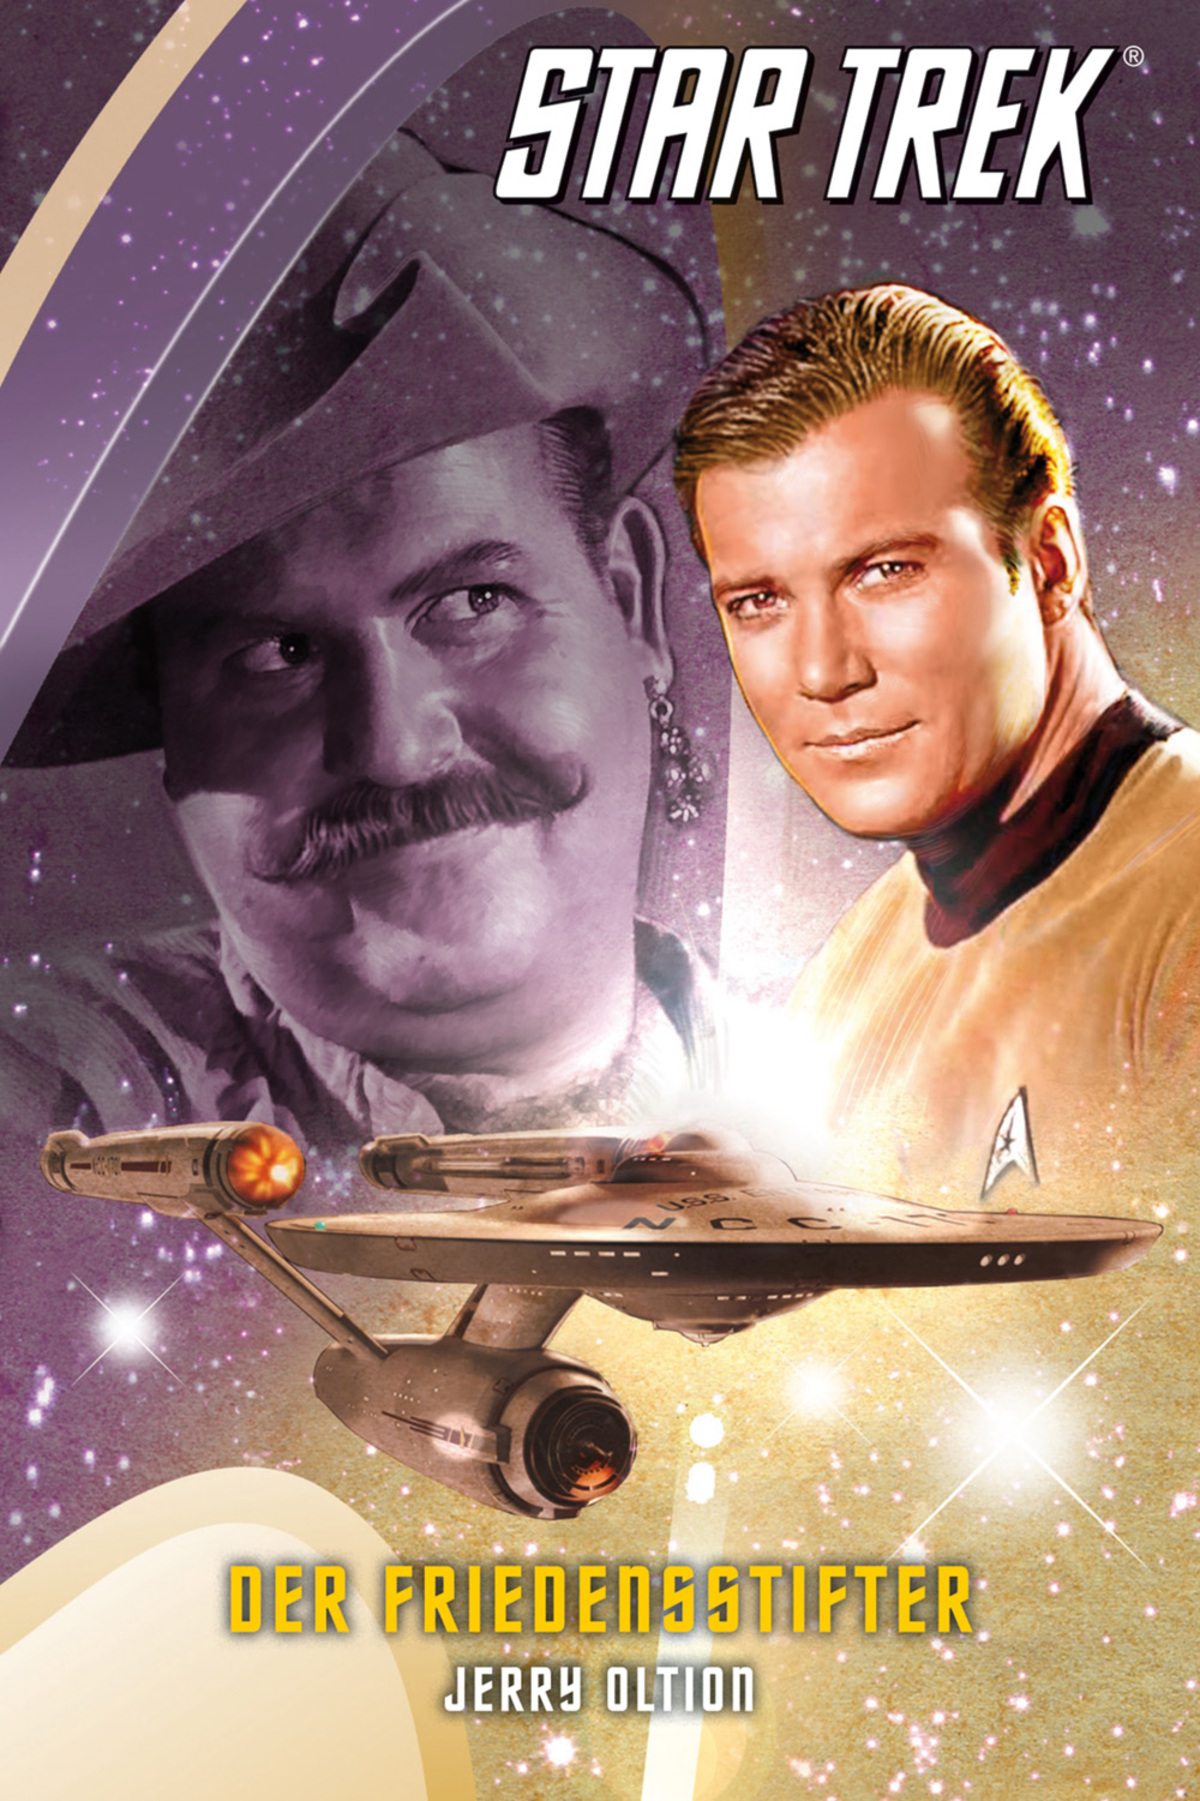 Star Trek: The Original Series 4